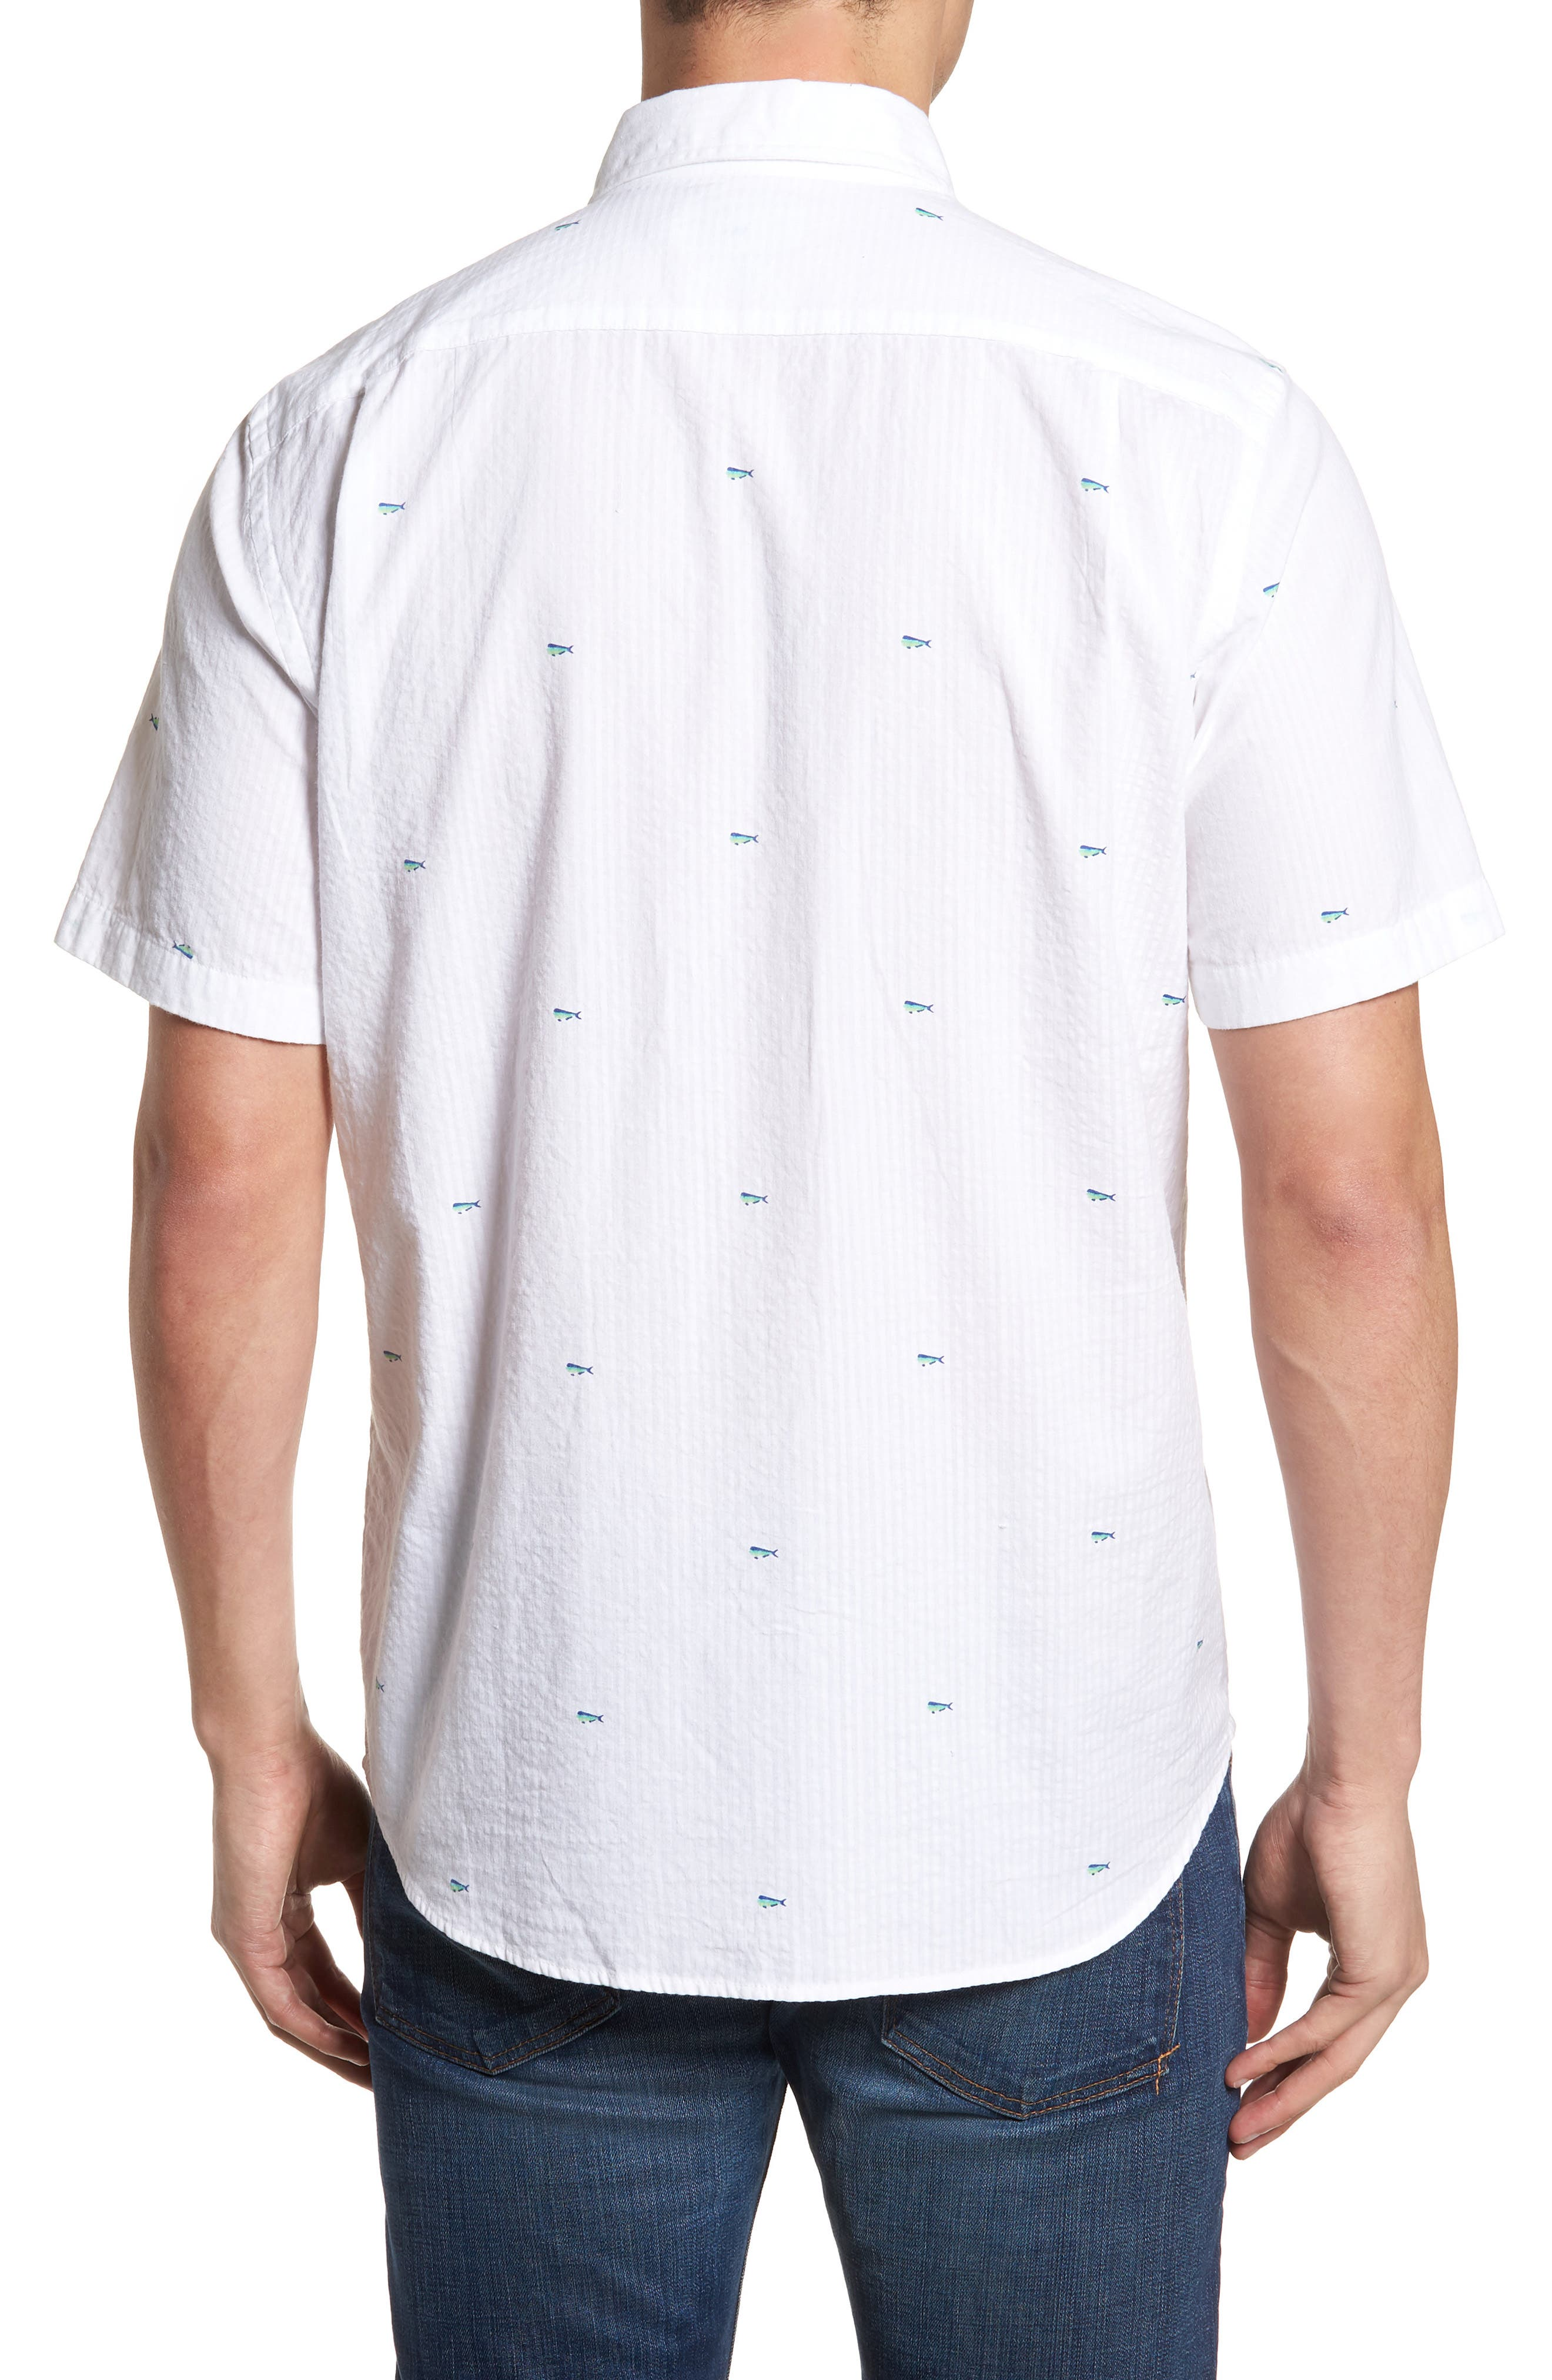 Catch of the Day Sport Shirt,                             Alternate thumbnail 2, color,                             107